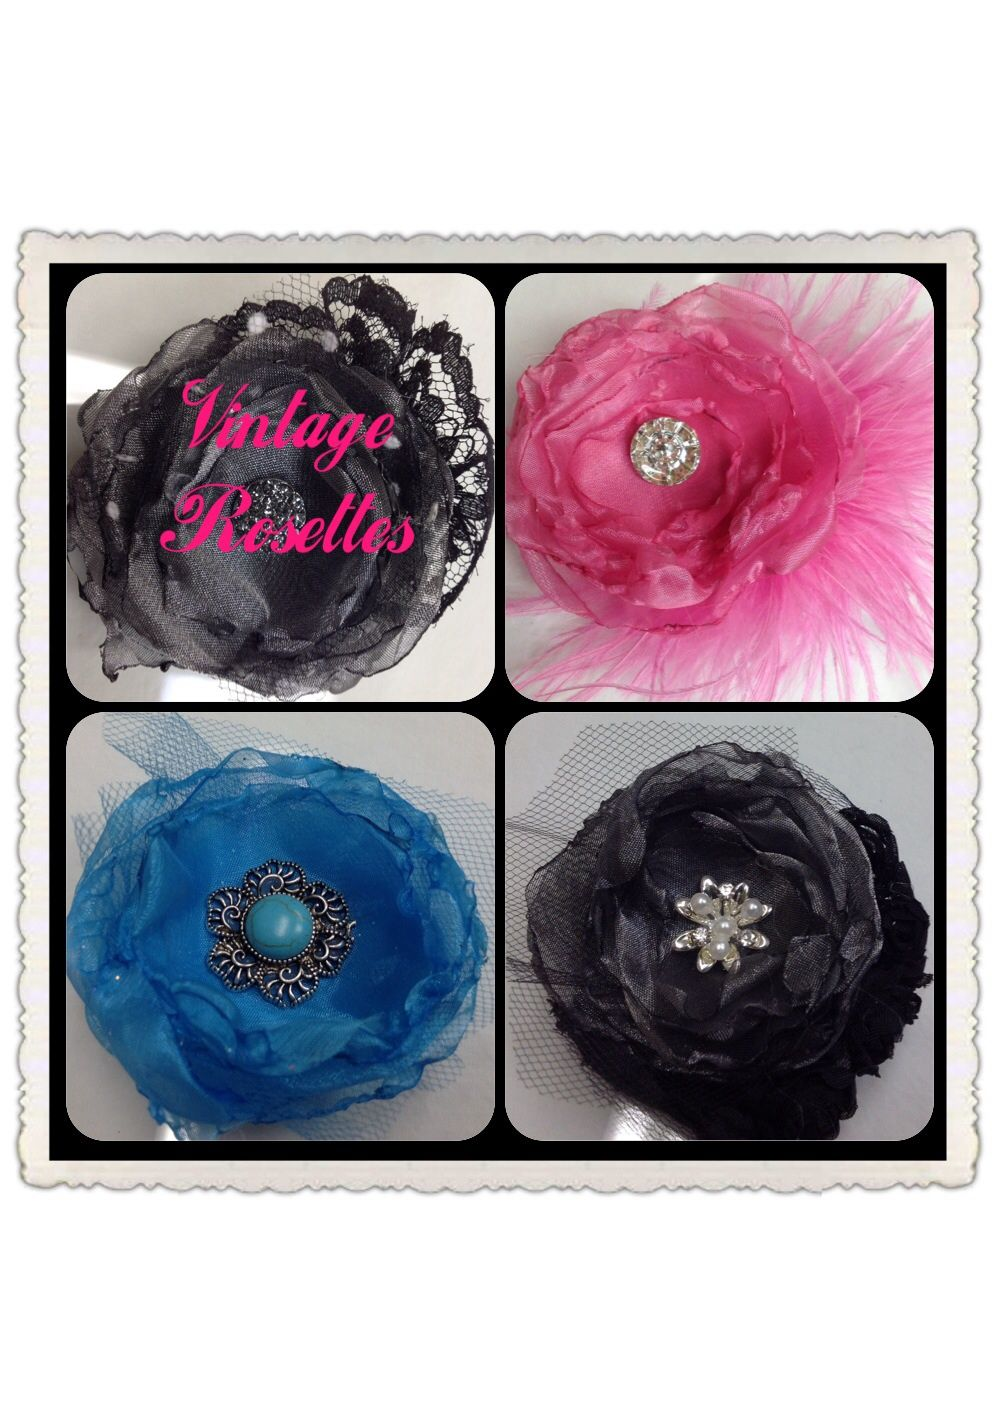 "2/1"" Vintage Rosettes.  Accessorize your little Diva at BowZ and More WWW.Facebook.com/NewBowzandMore"